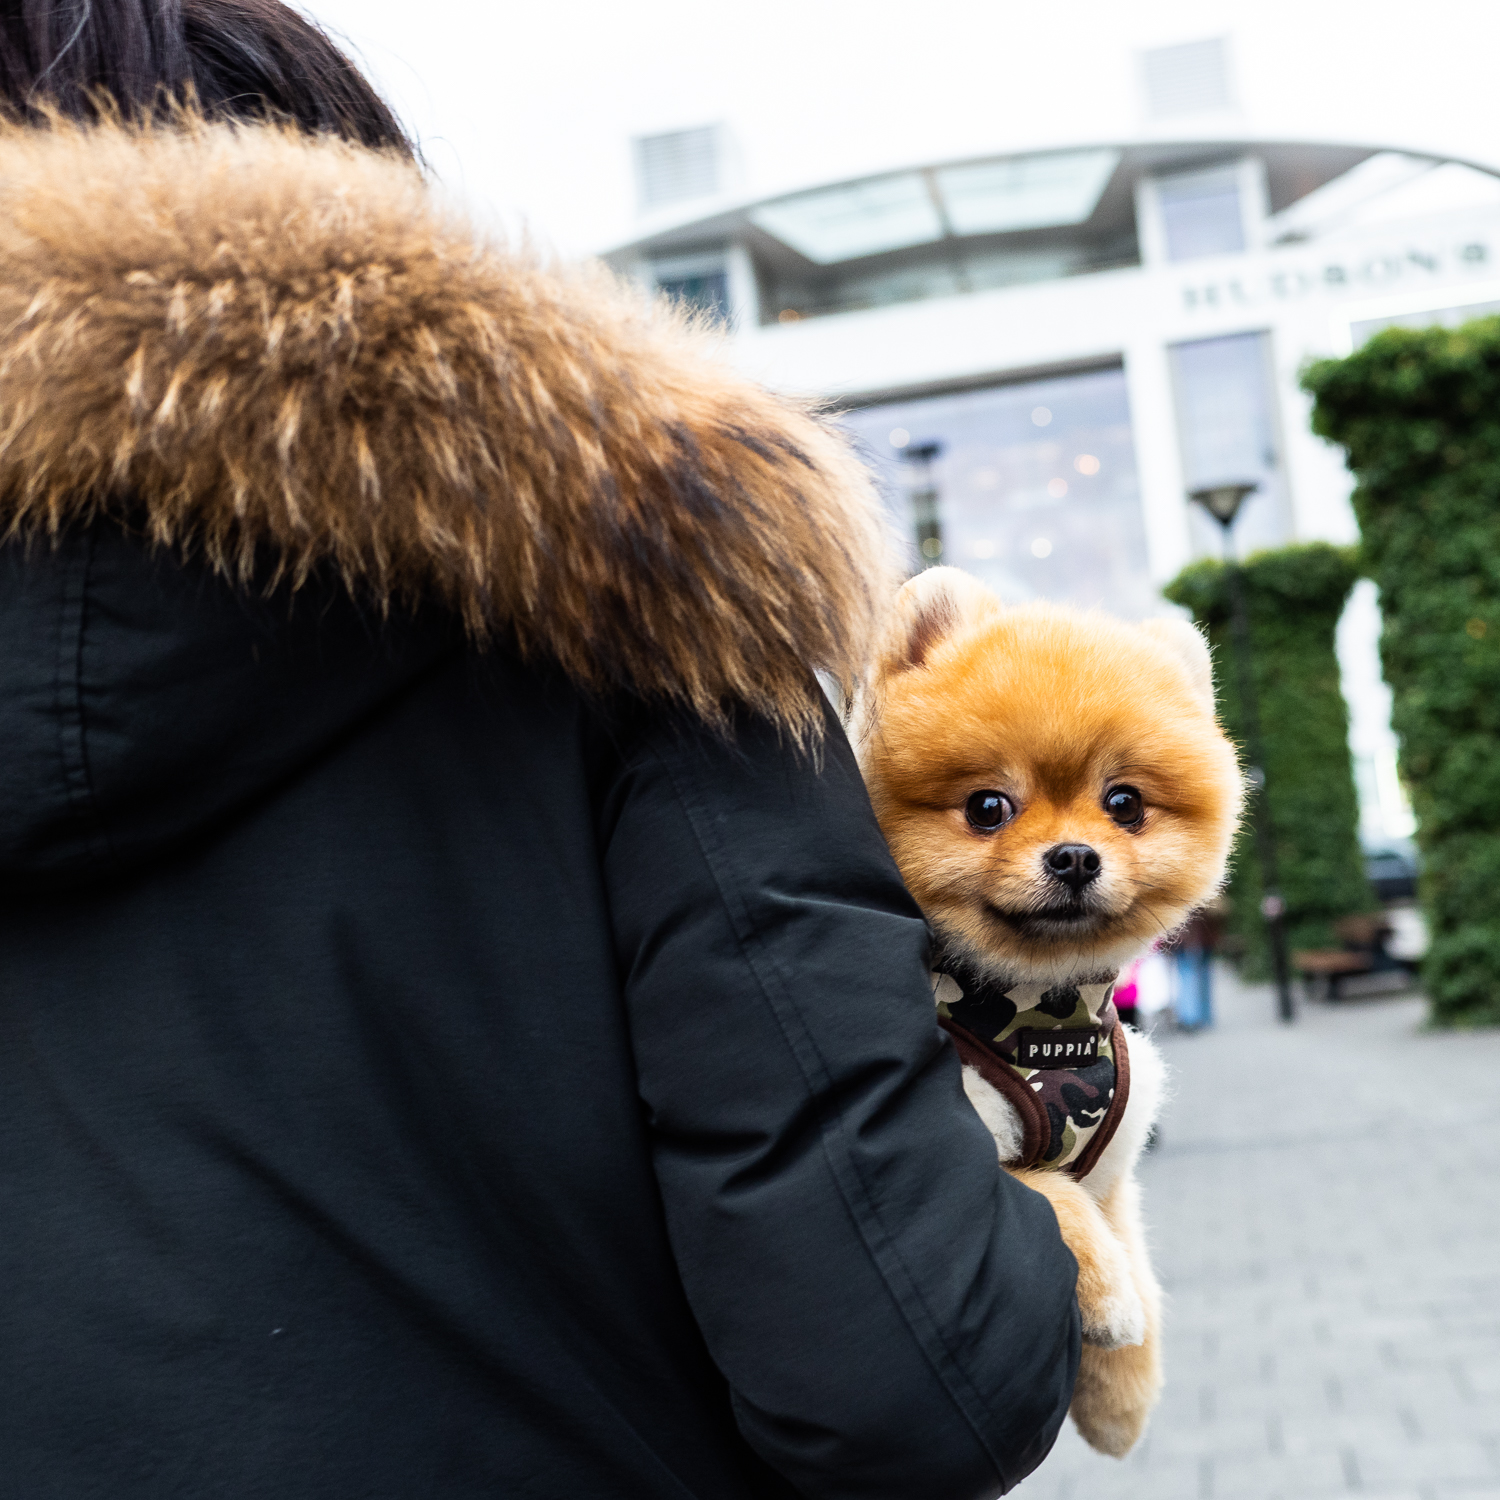 this cute little dog in both photos. They both have their positives. I connection between the furry colar of her coat and the fur of the dog is more clear for me.